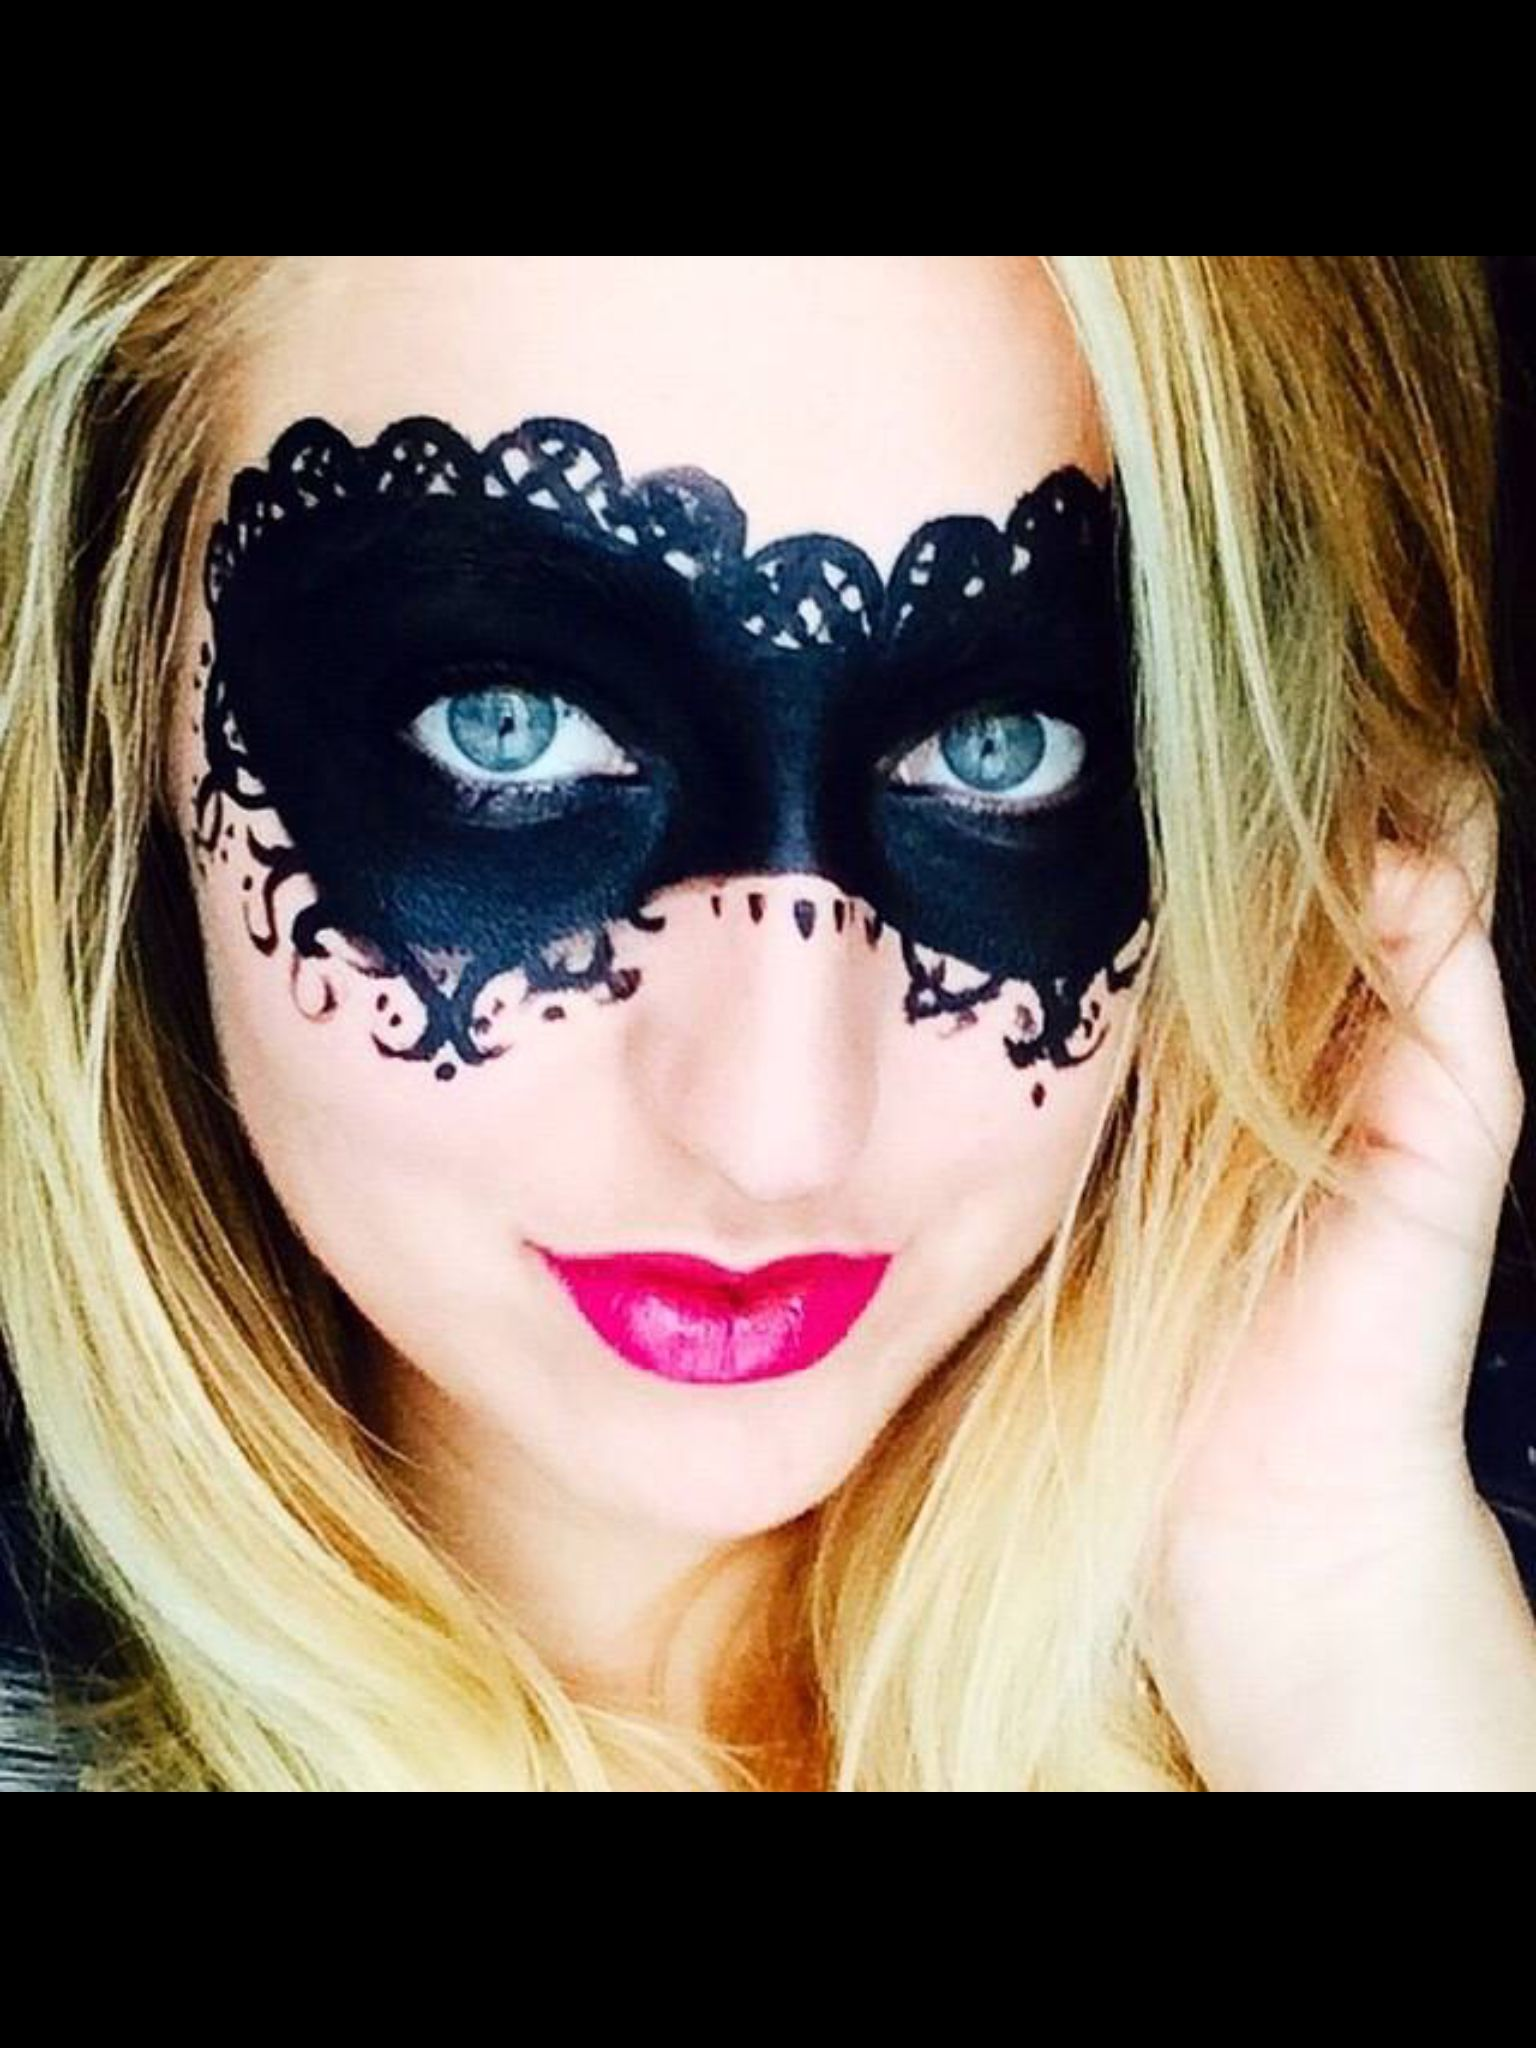 Get you Halloween on the Younique way! Younique pigment